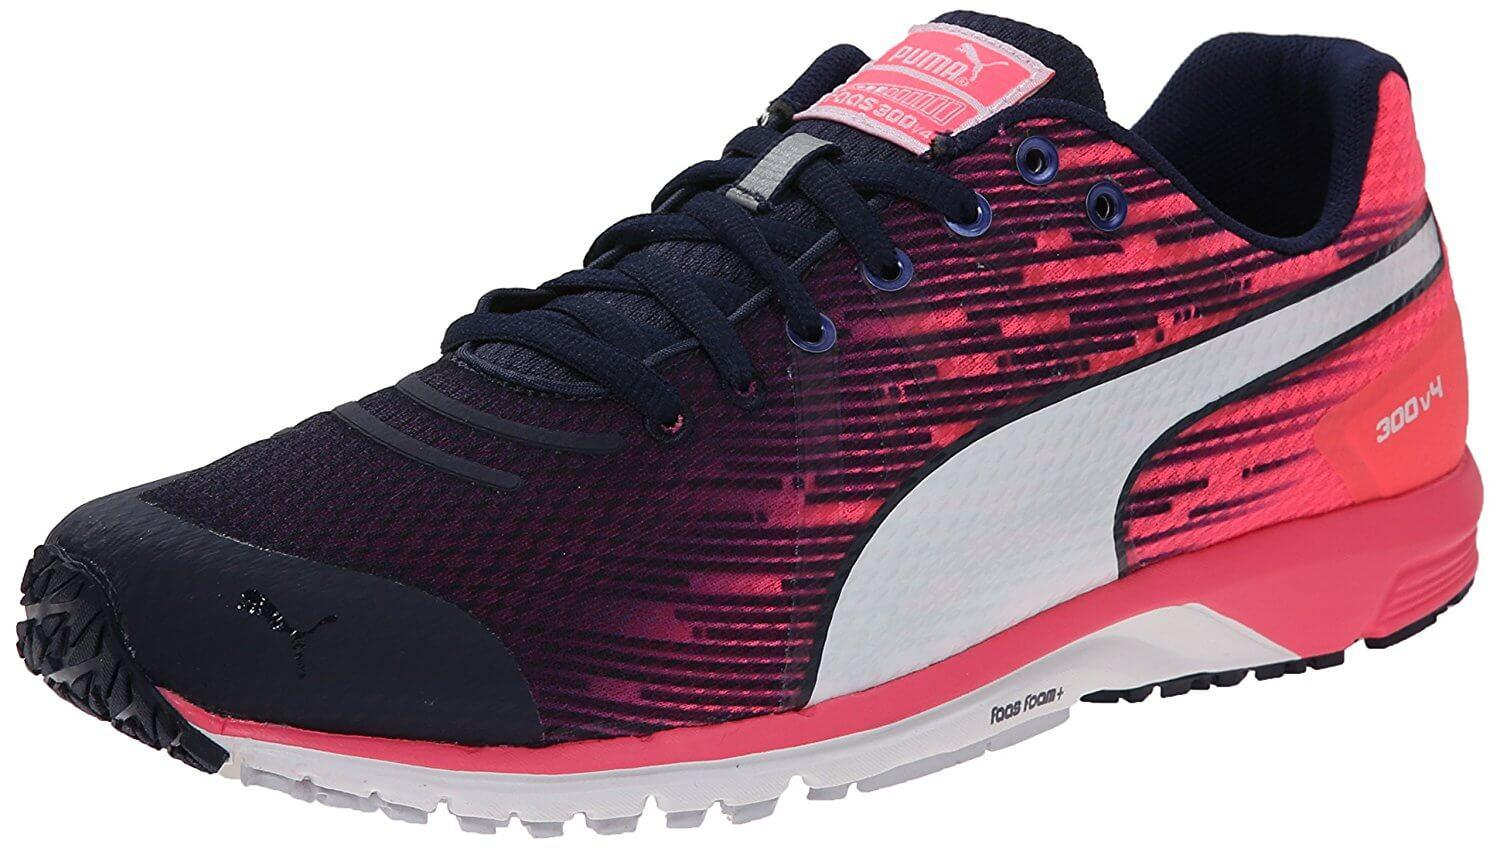 72065d060c3a Puma Faas 300 v4 Reviewed - To Buy or Not in Apr 2019